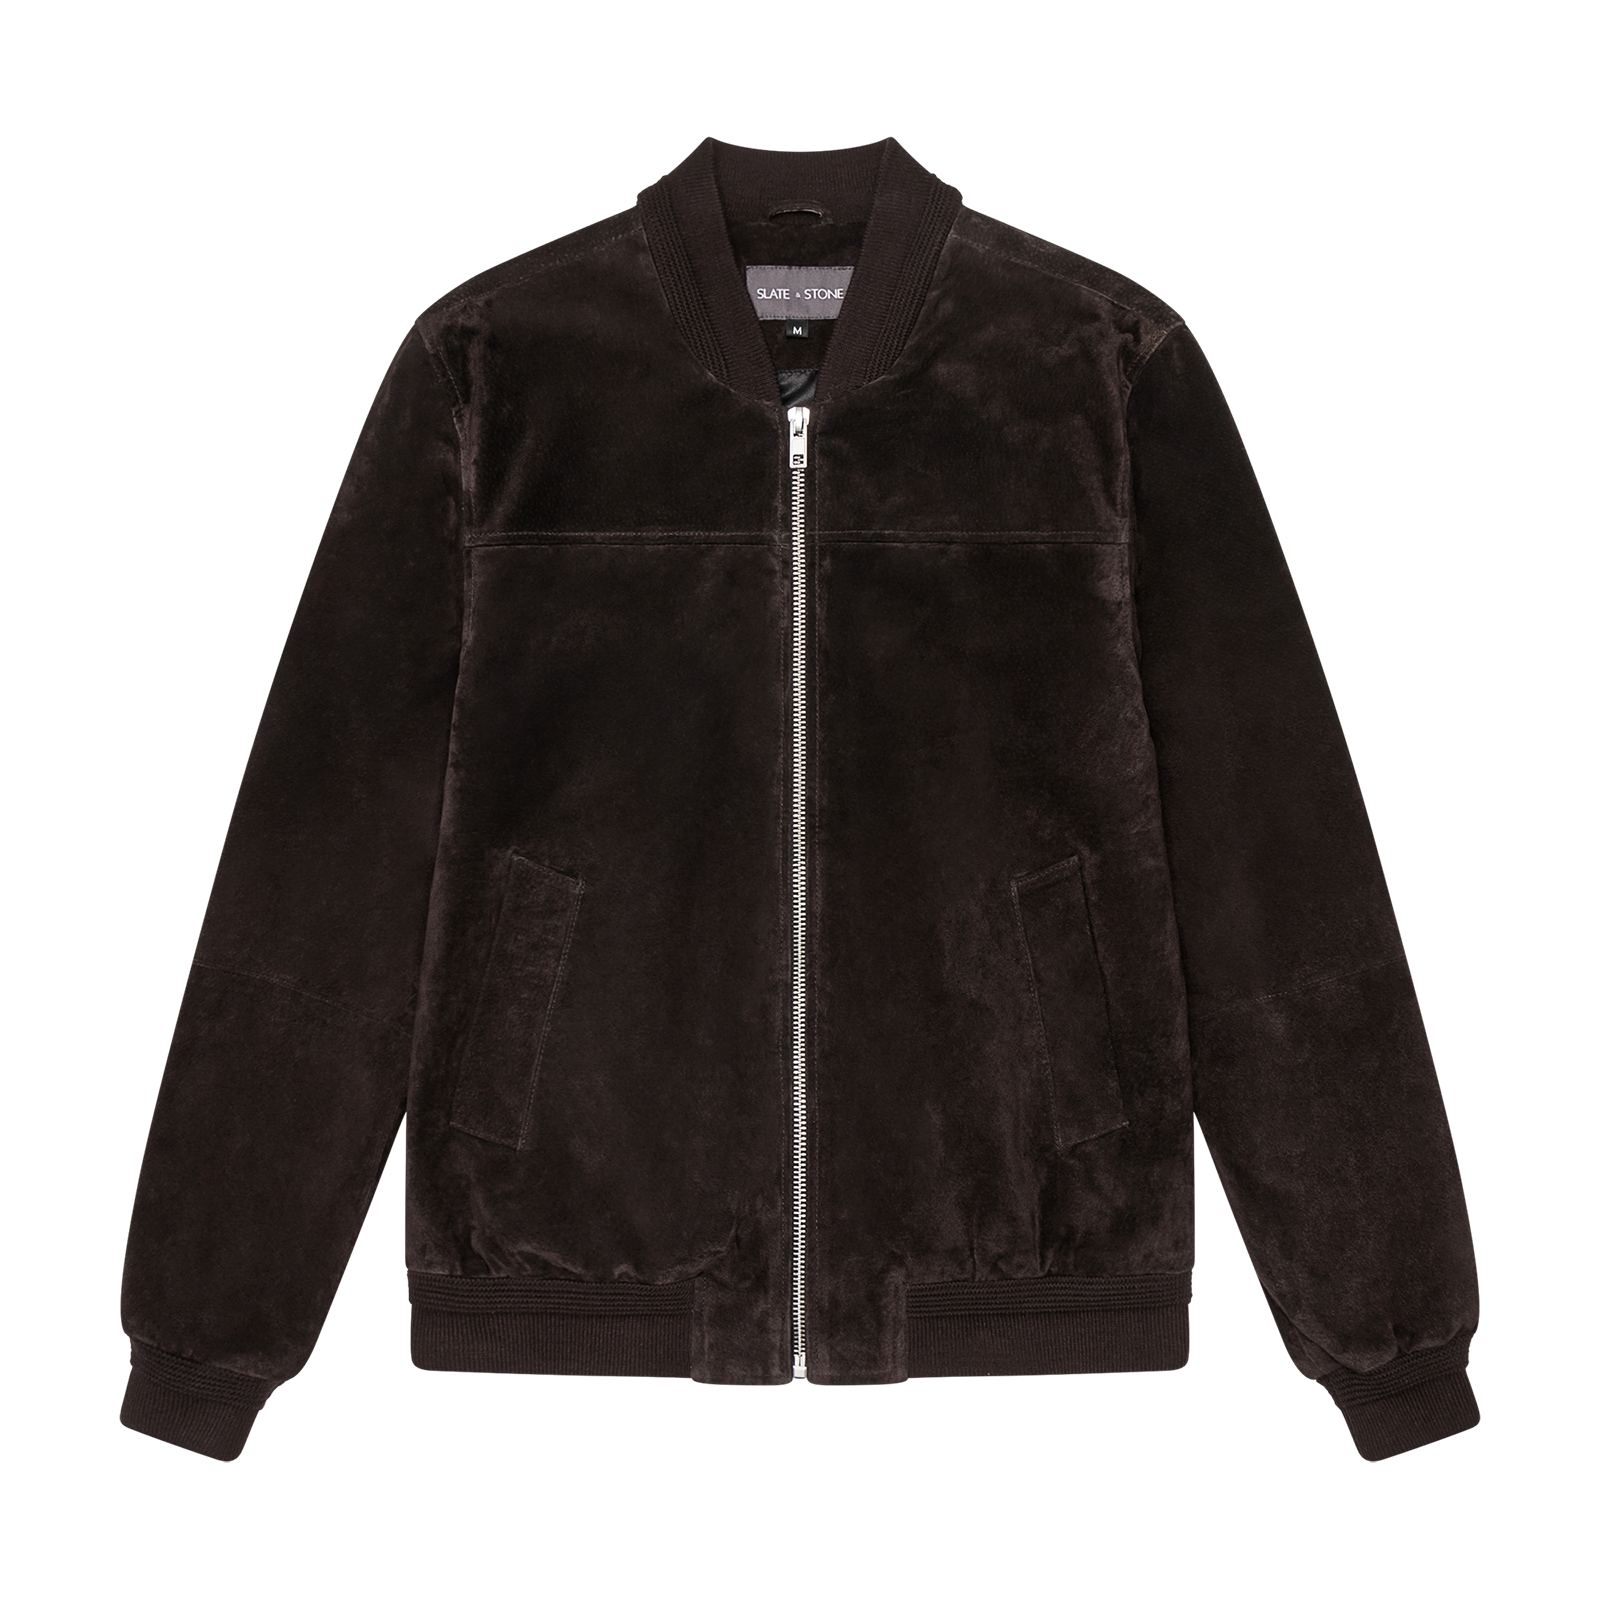 Velour jacket product picture